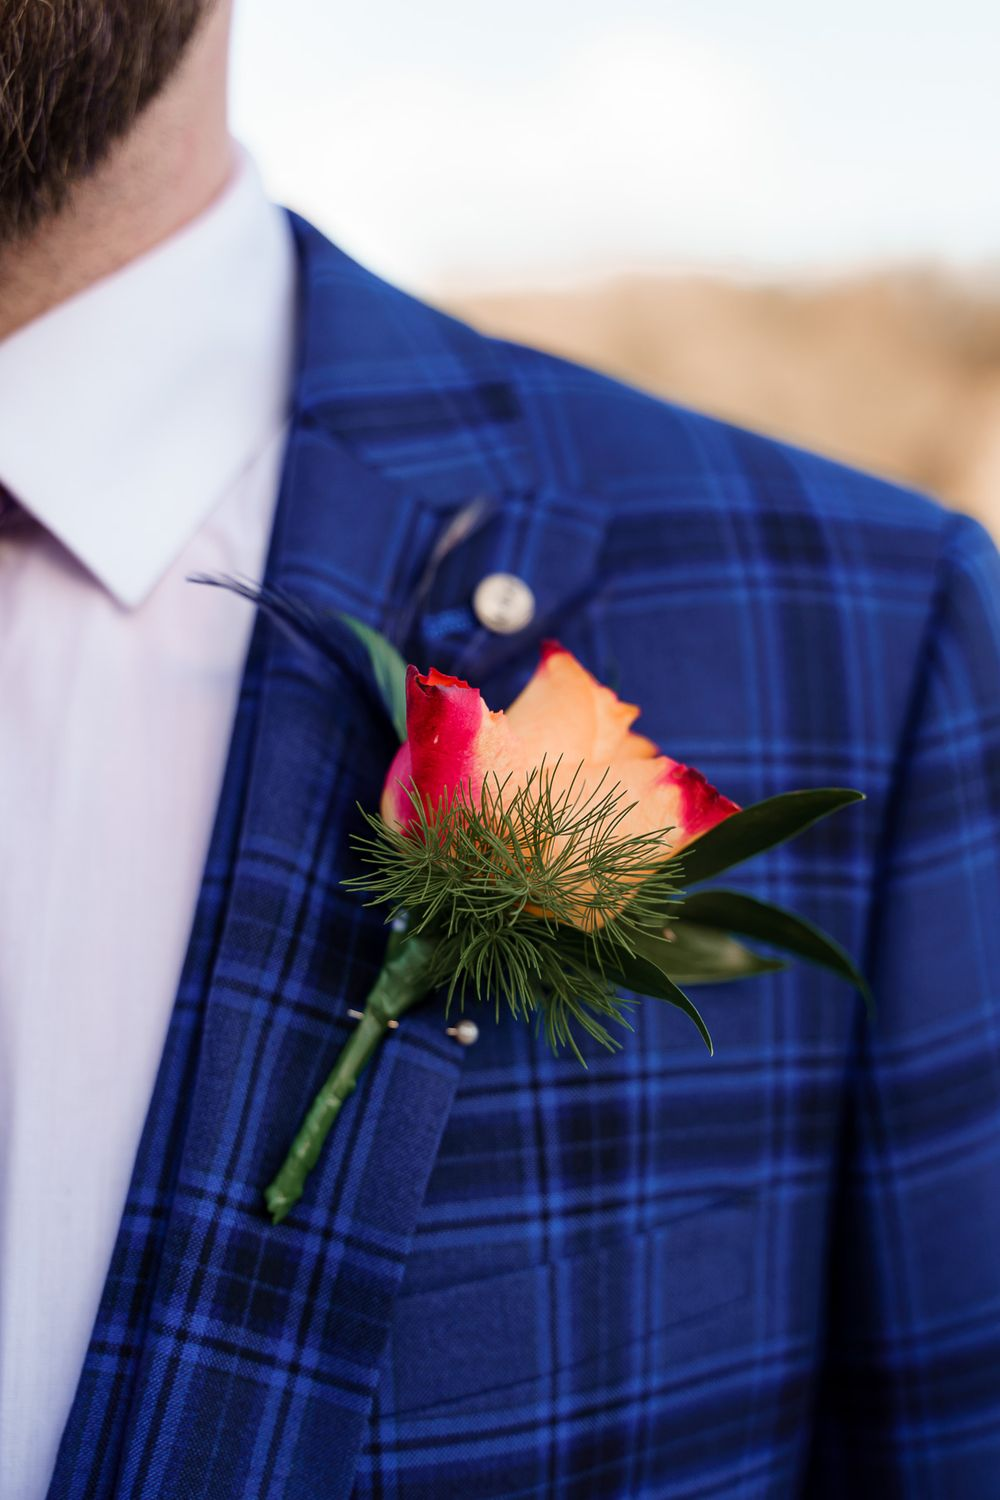 Colourful red and orange rose buttonhole against a bold blue check suit - peacock wedding theme Winchester